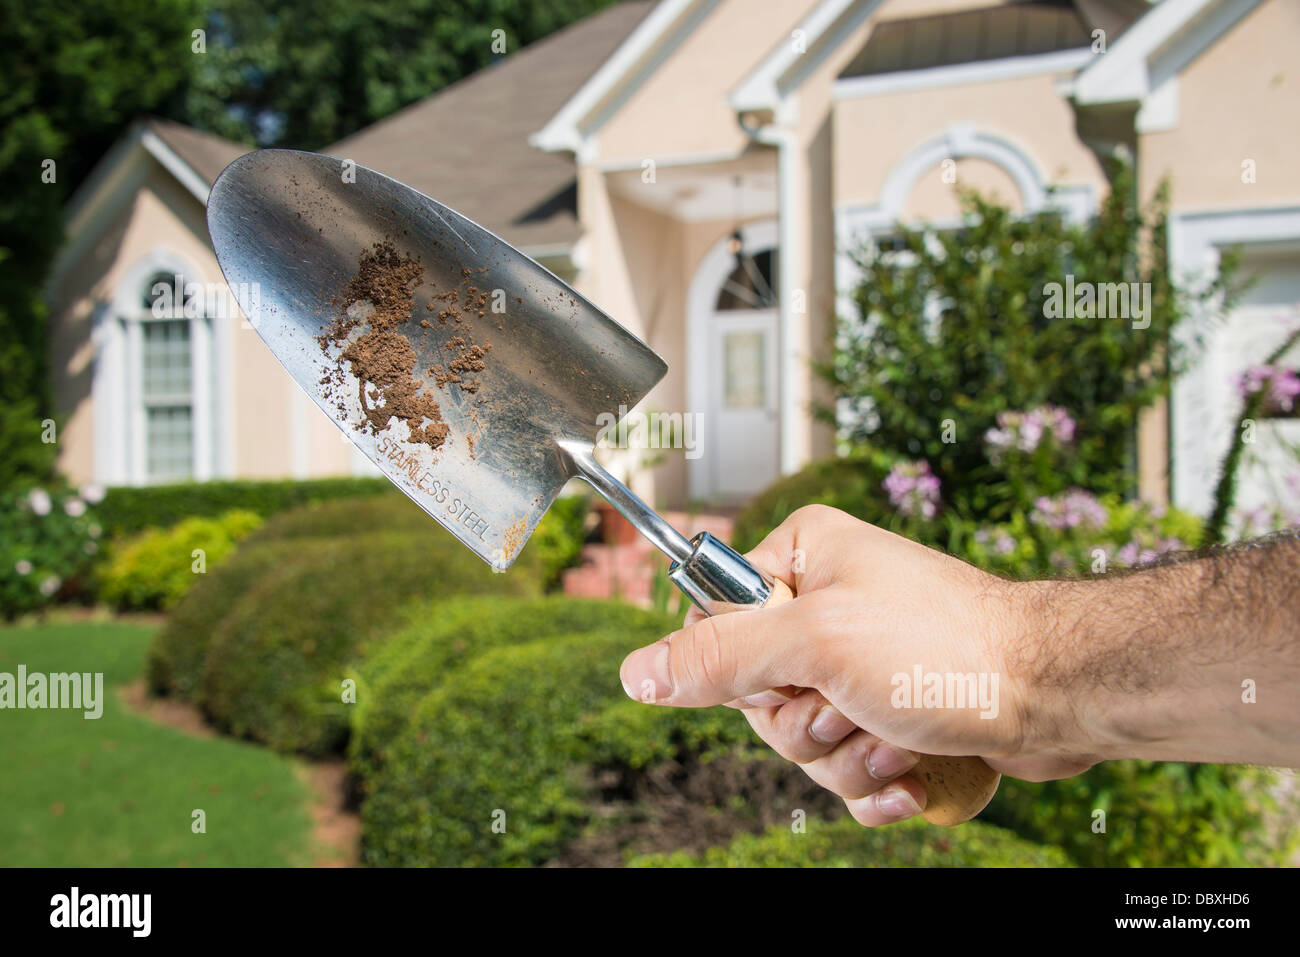 Man's hand holding dirty gardening spade in front of a home's front lawn. - Stock Image